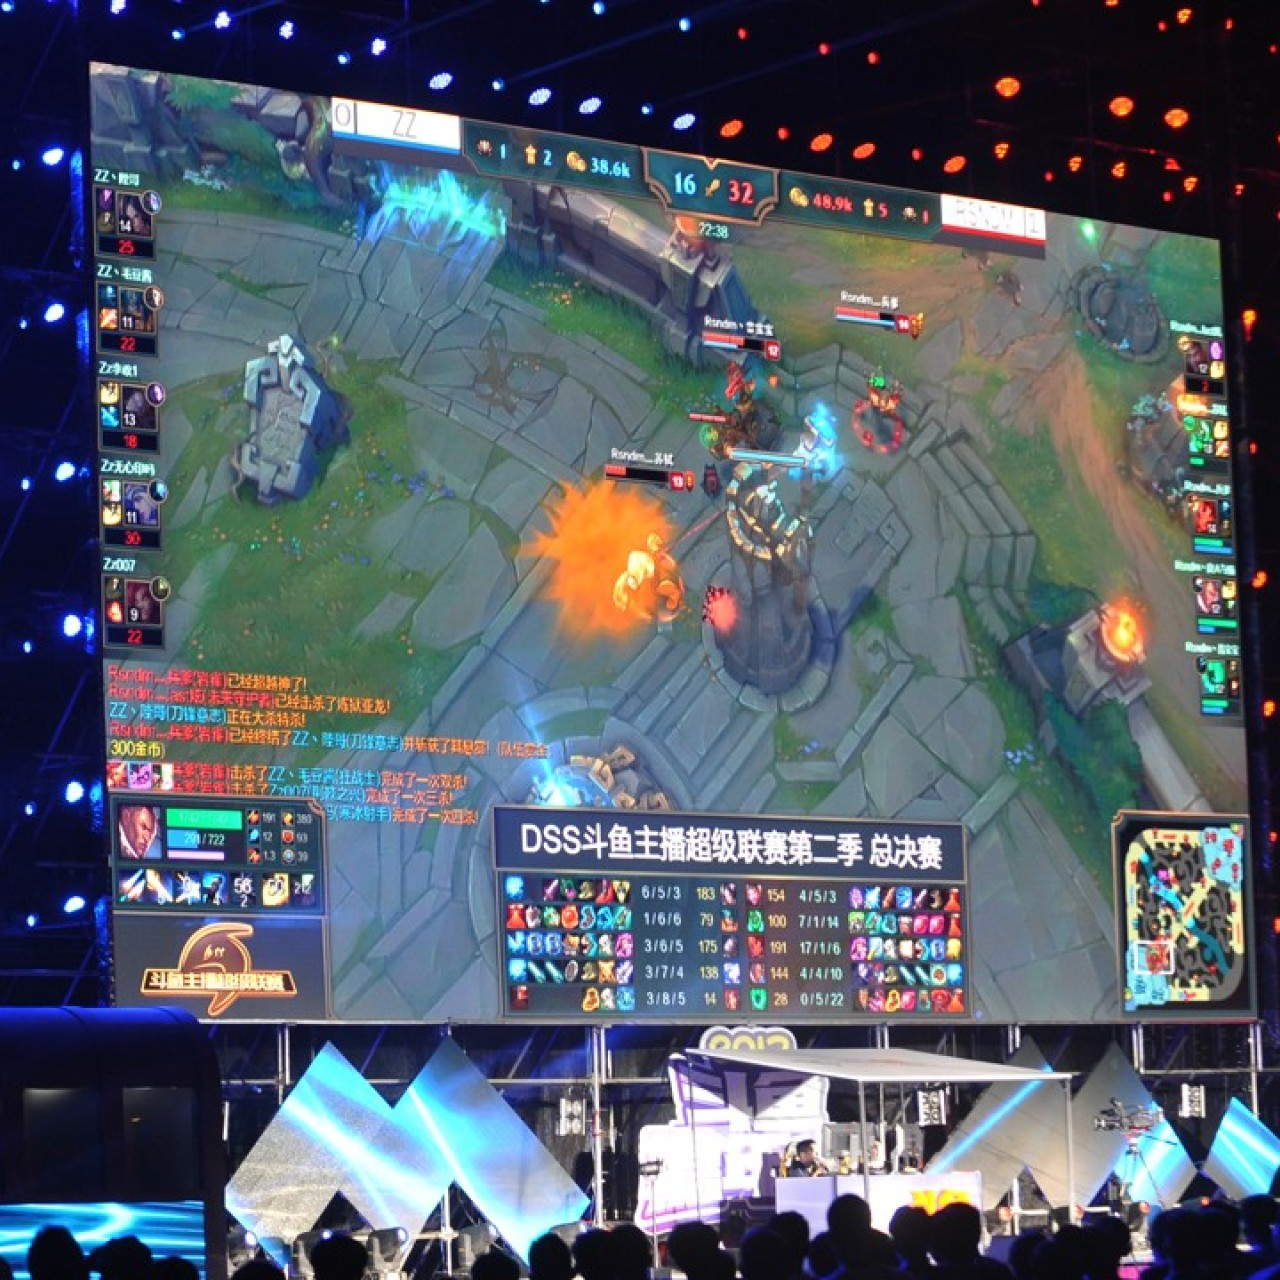 Does Hong Kong need an e-sports league to bring industry and players